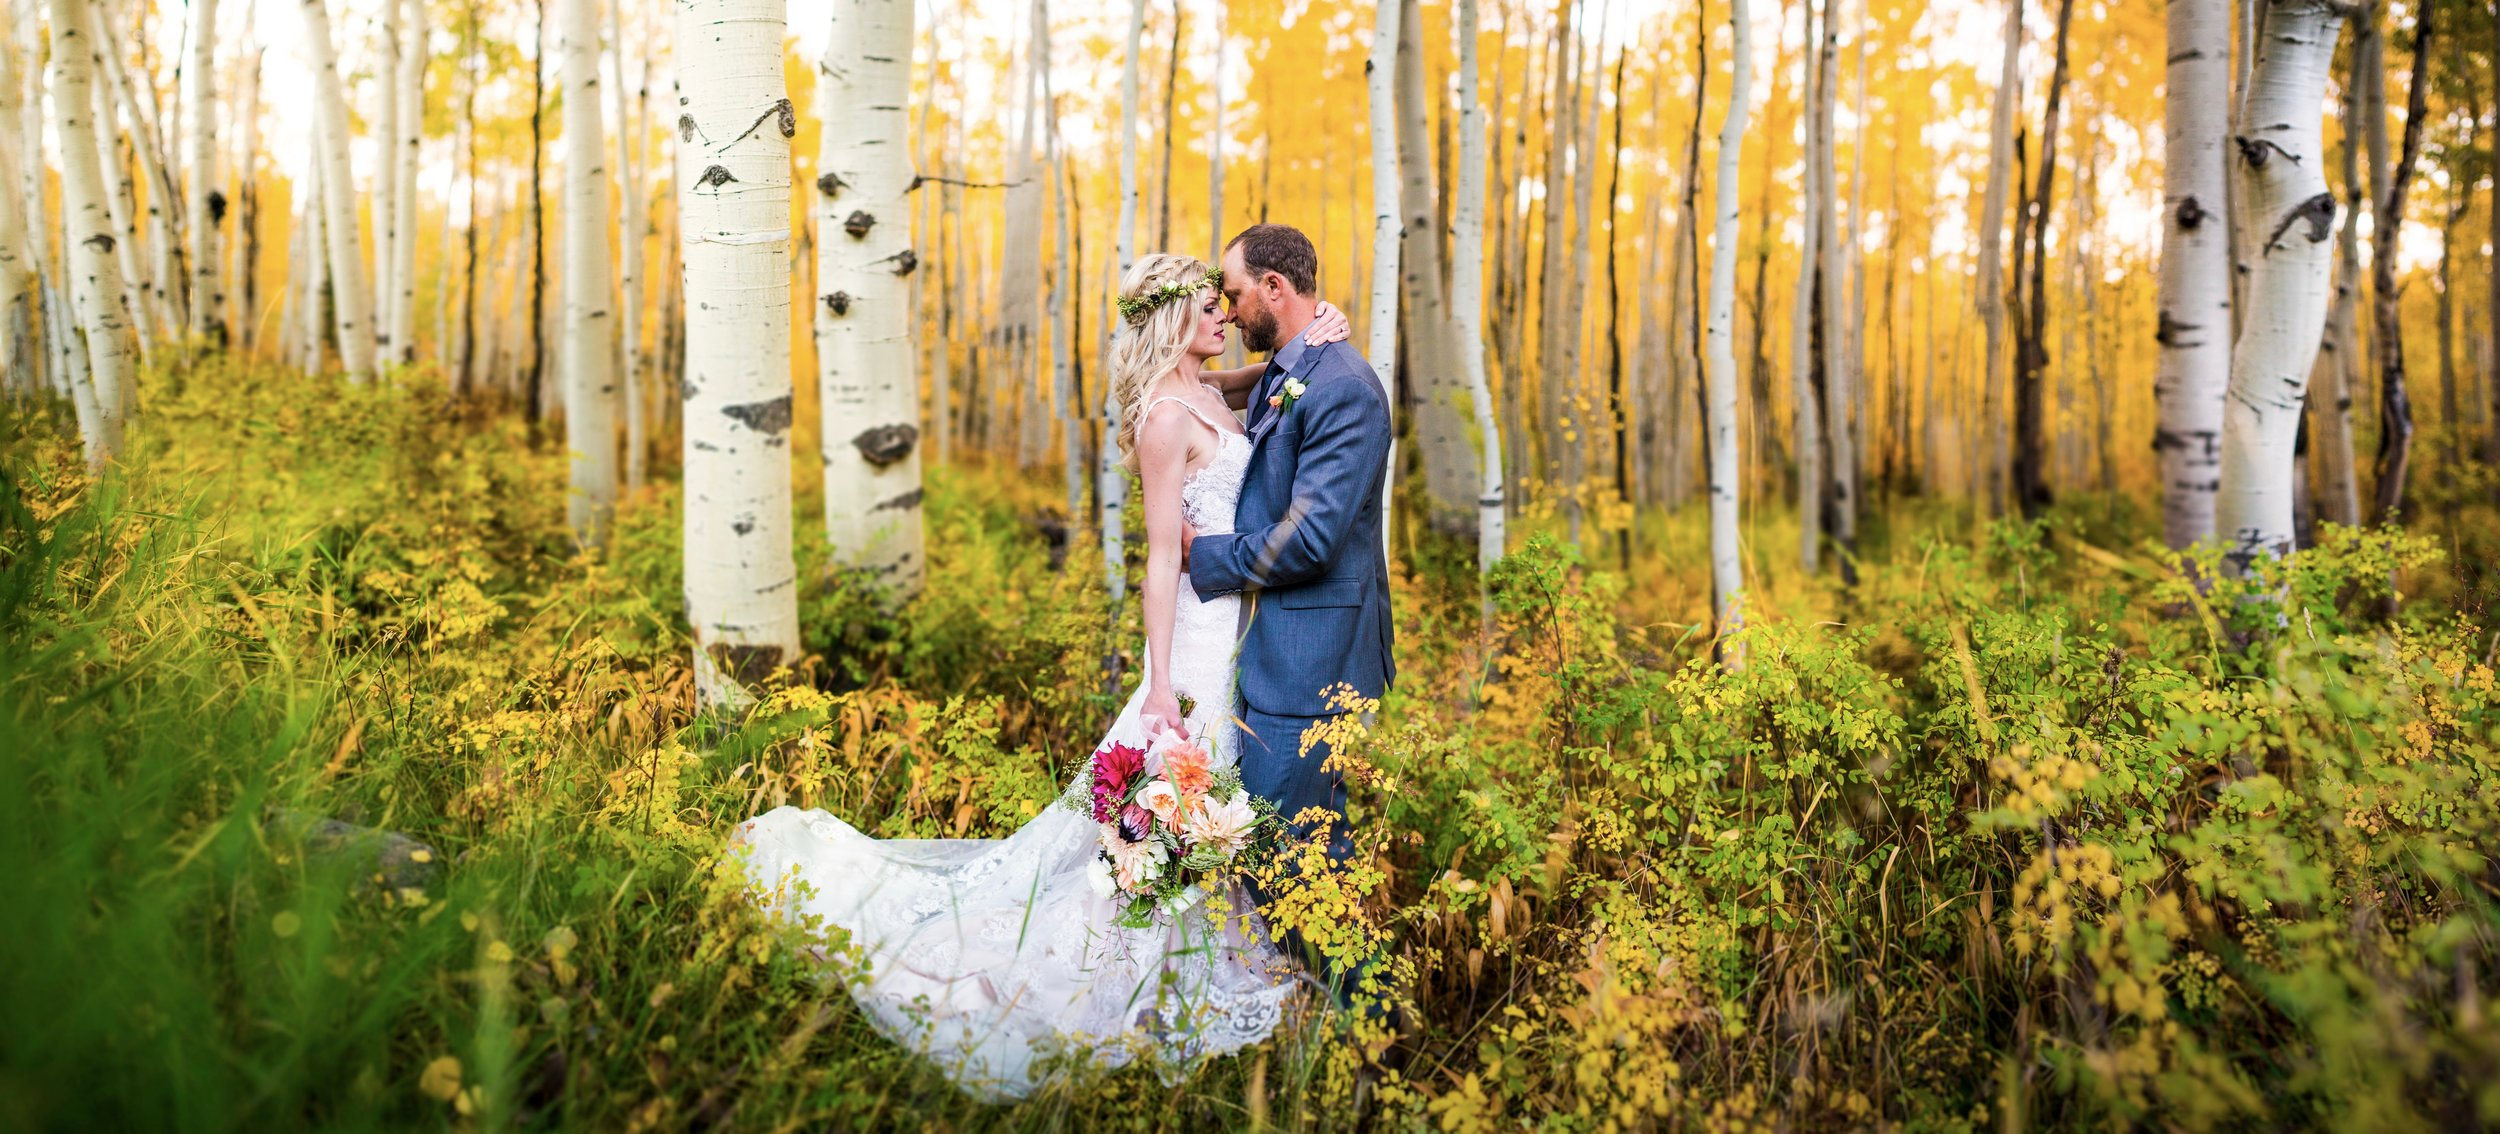 Bride and groom in aspen grove